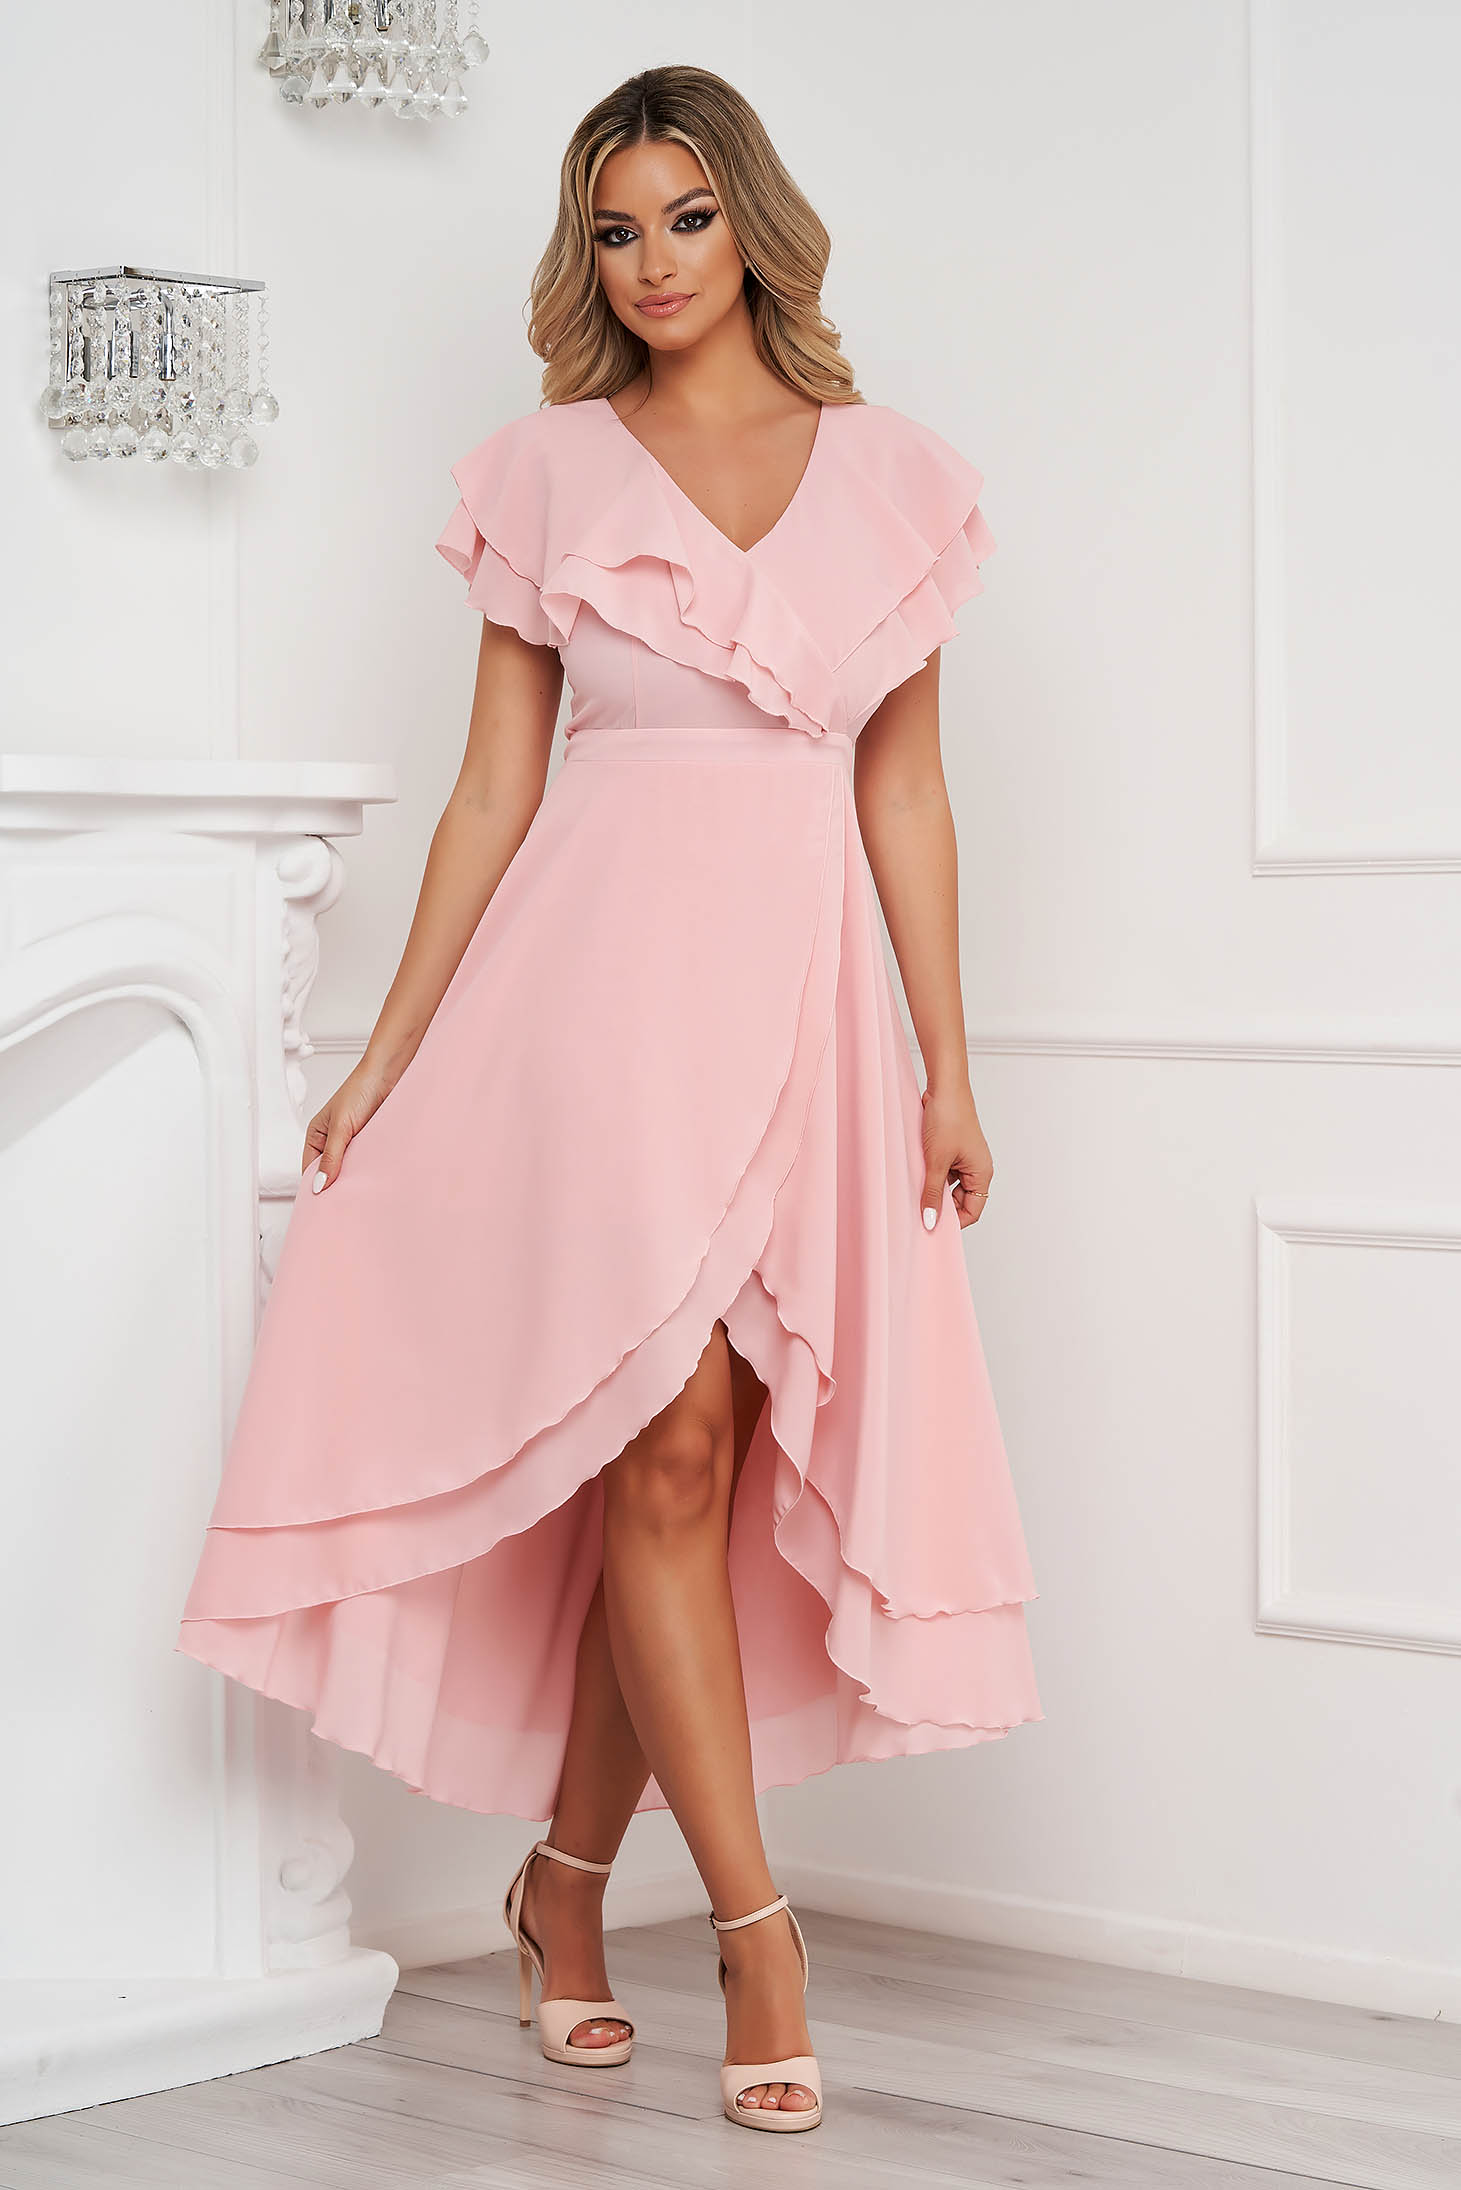 Dress StarShinerS lightpink occasional from veil fabric with ruffle details asymmetrical cloche